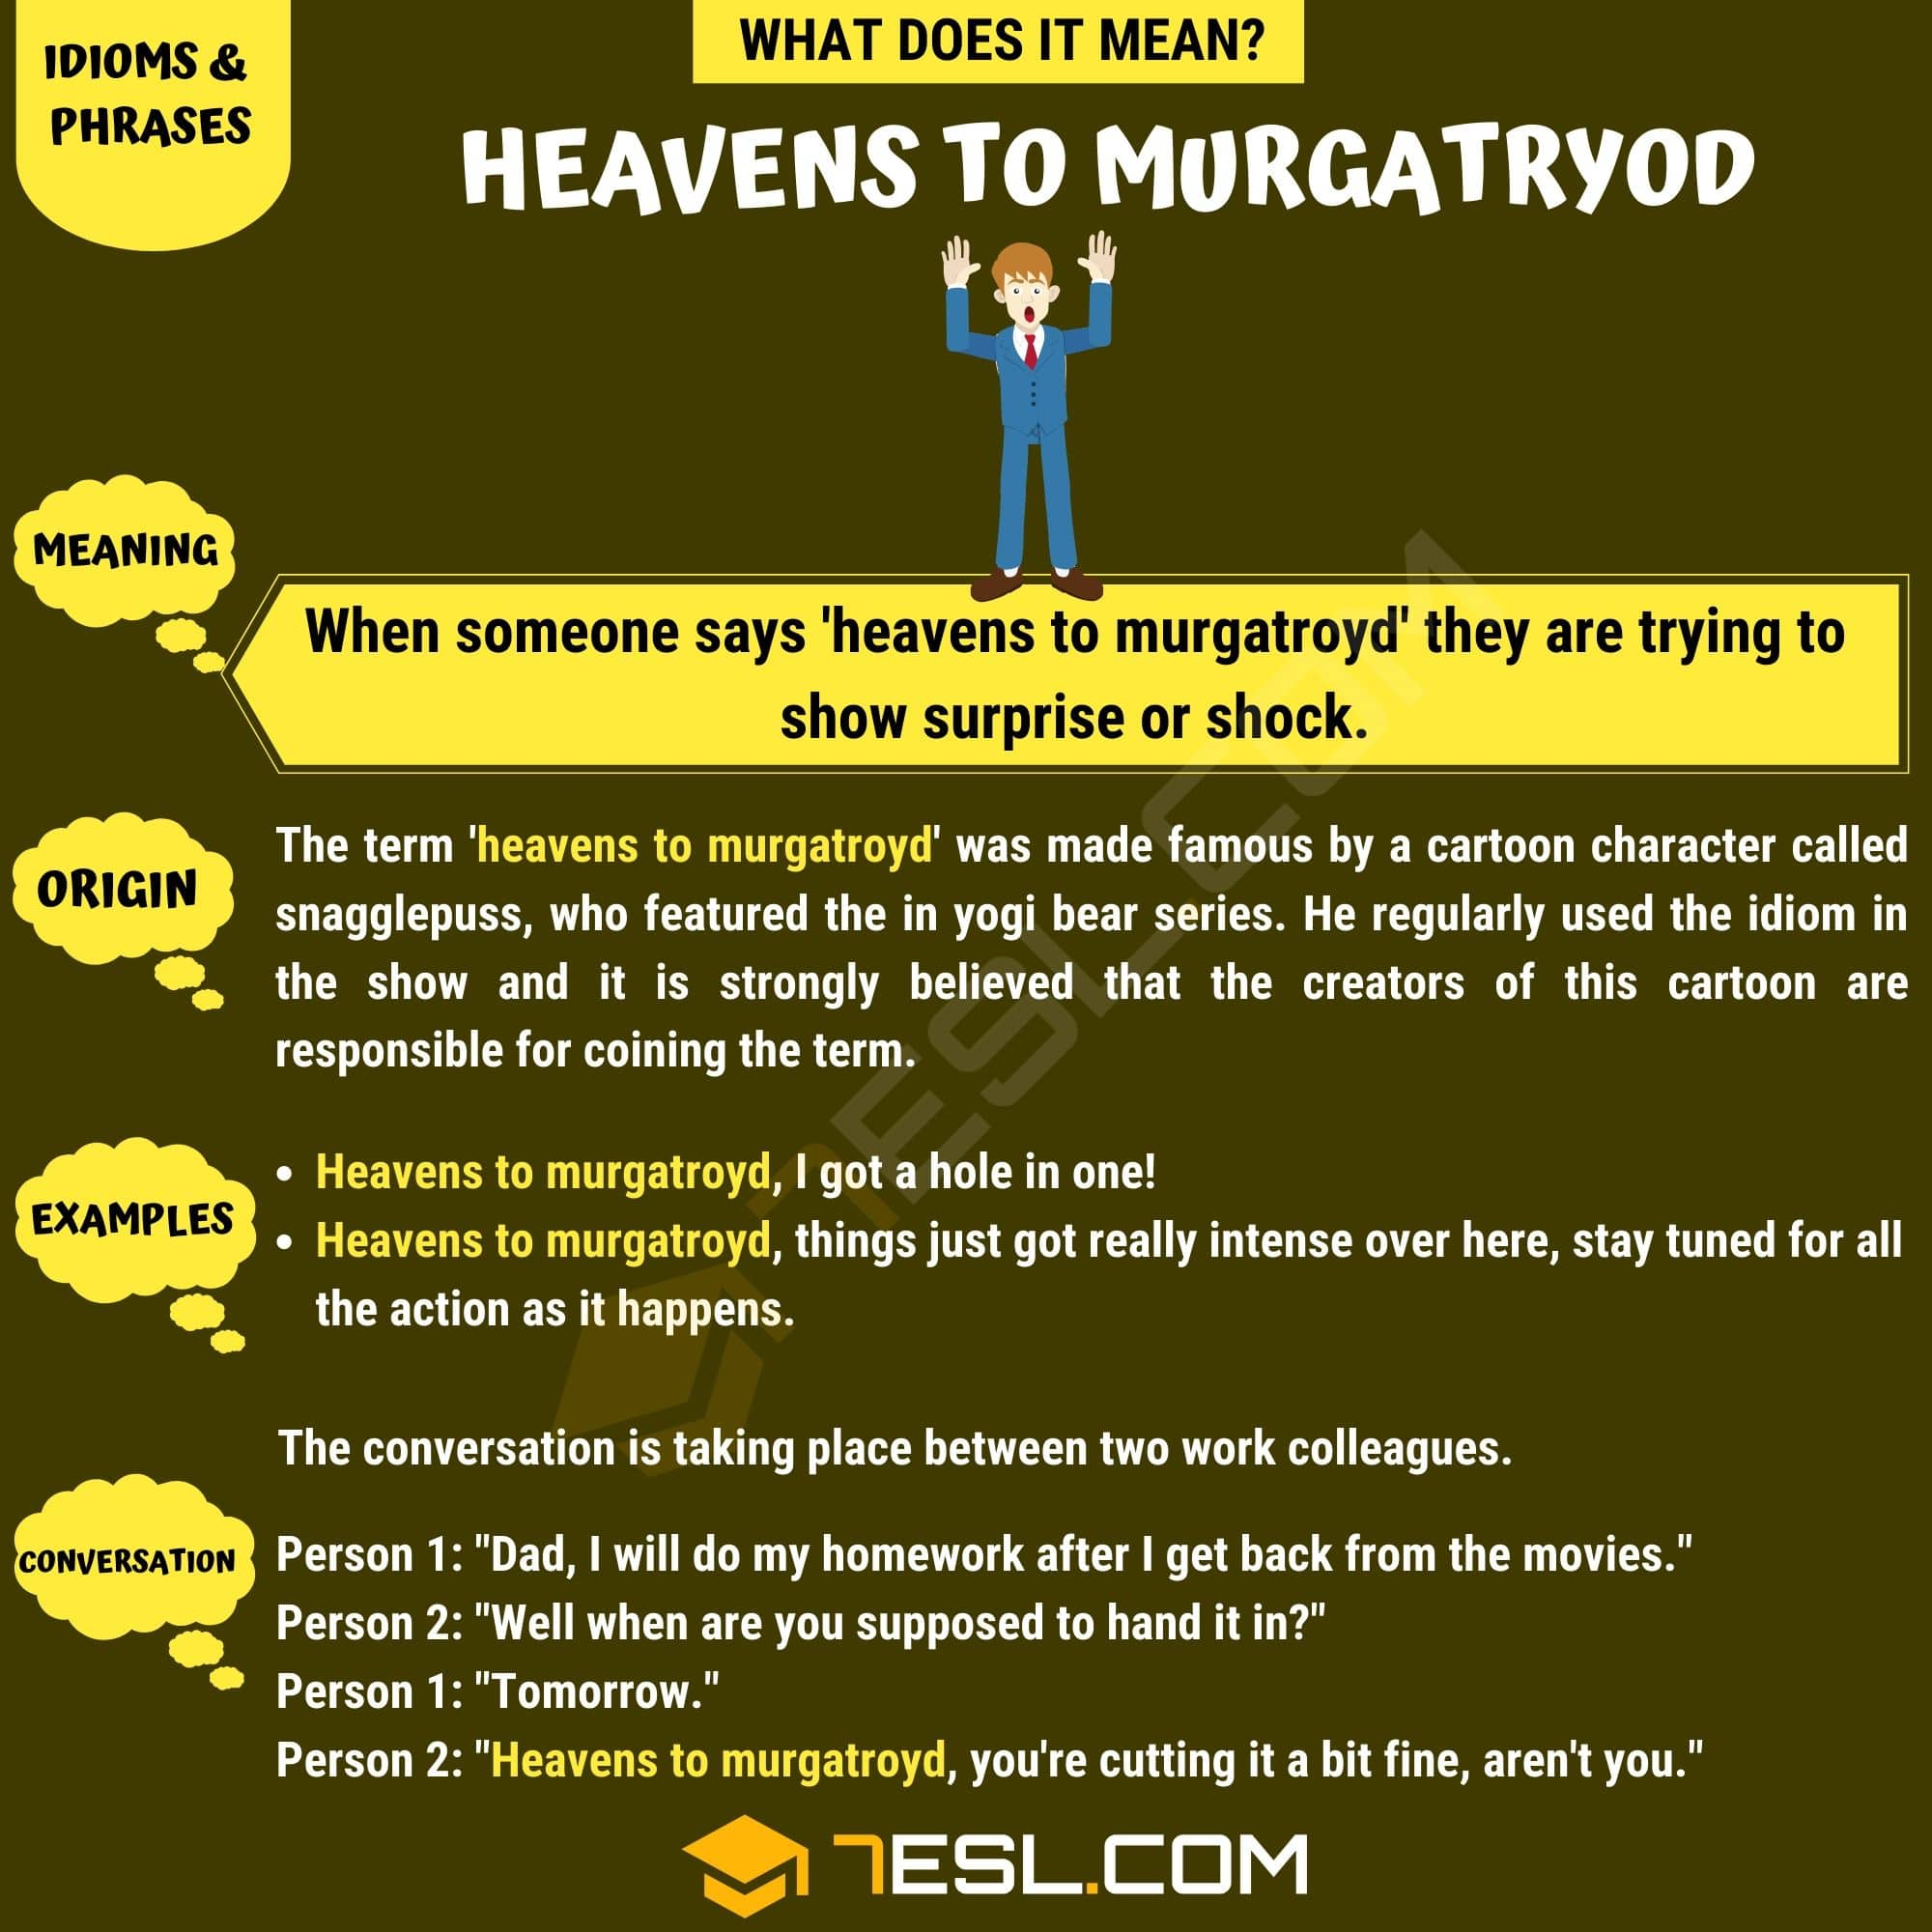 Heavens to Murgatroyd: What Is the Definition of this Useful Idiomatic Phrase?